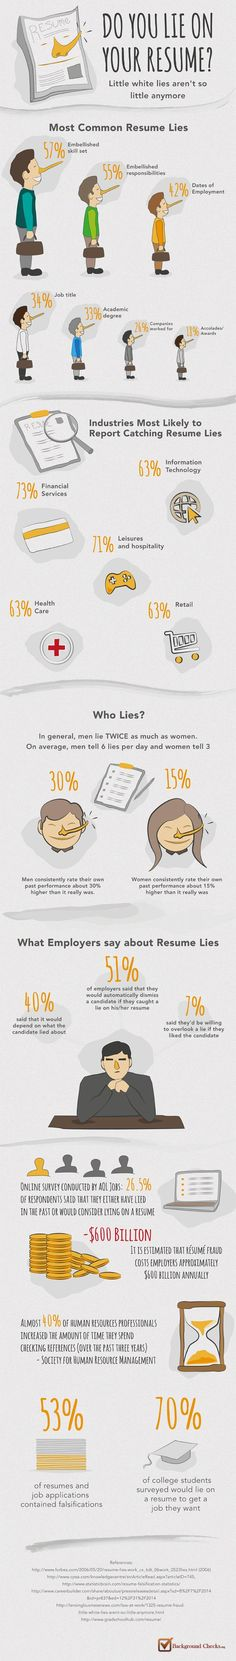 Career infographic  Article on the most common mistakes - lying on resume